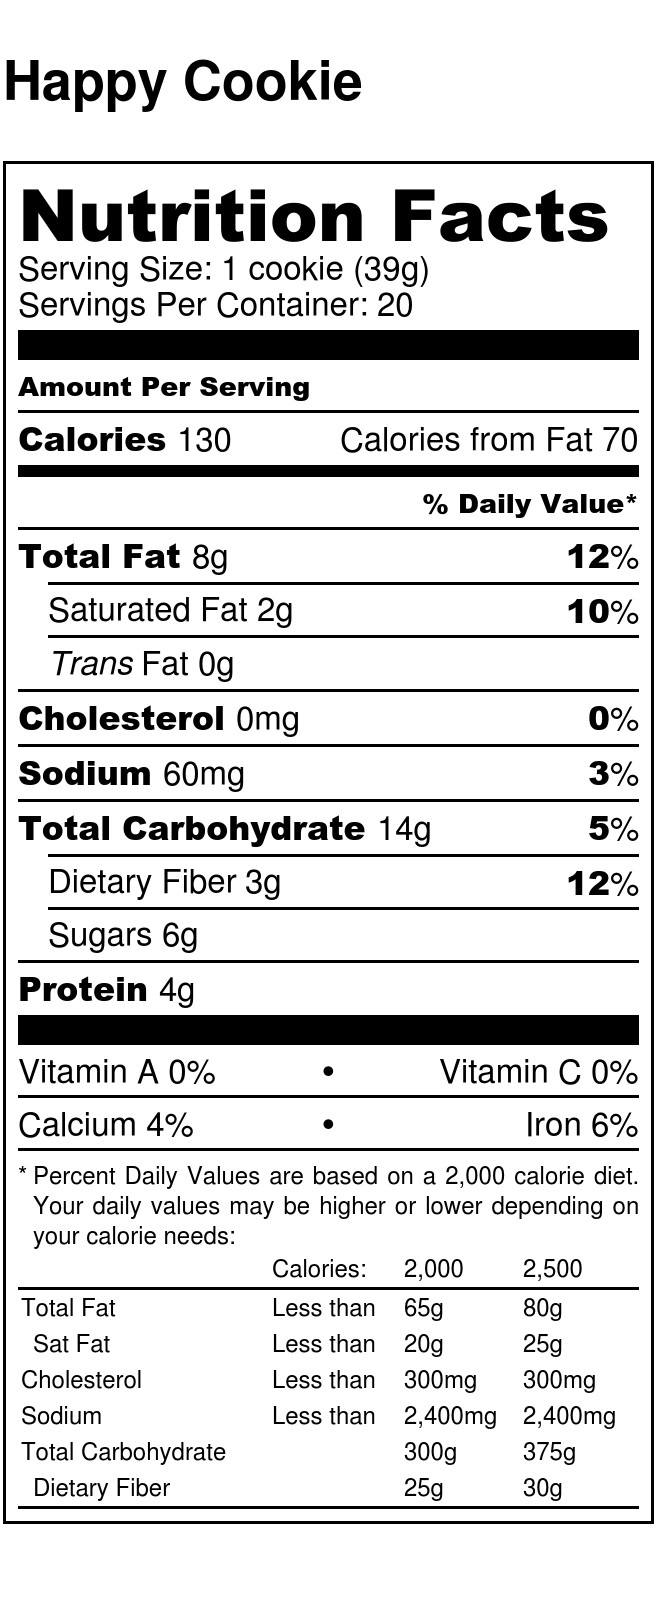 Power In The Group Happy Cookie - Nutrition Facts